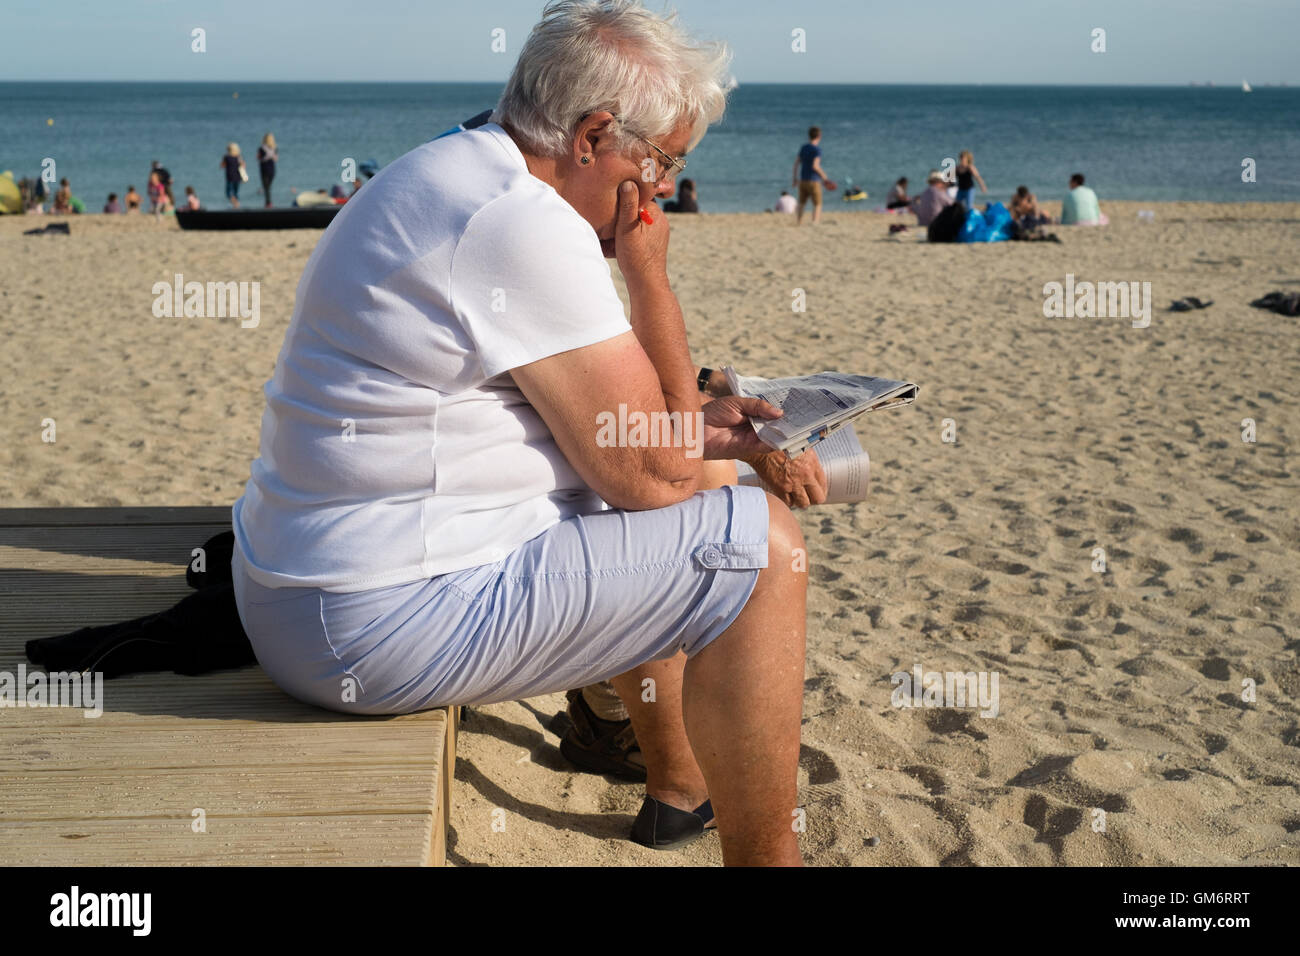 Woman reading the newspaper in the late afternoon sunshine at Gyllyngvase Beach, Falmouth, Cornwall. 24th August - Stock Image